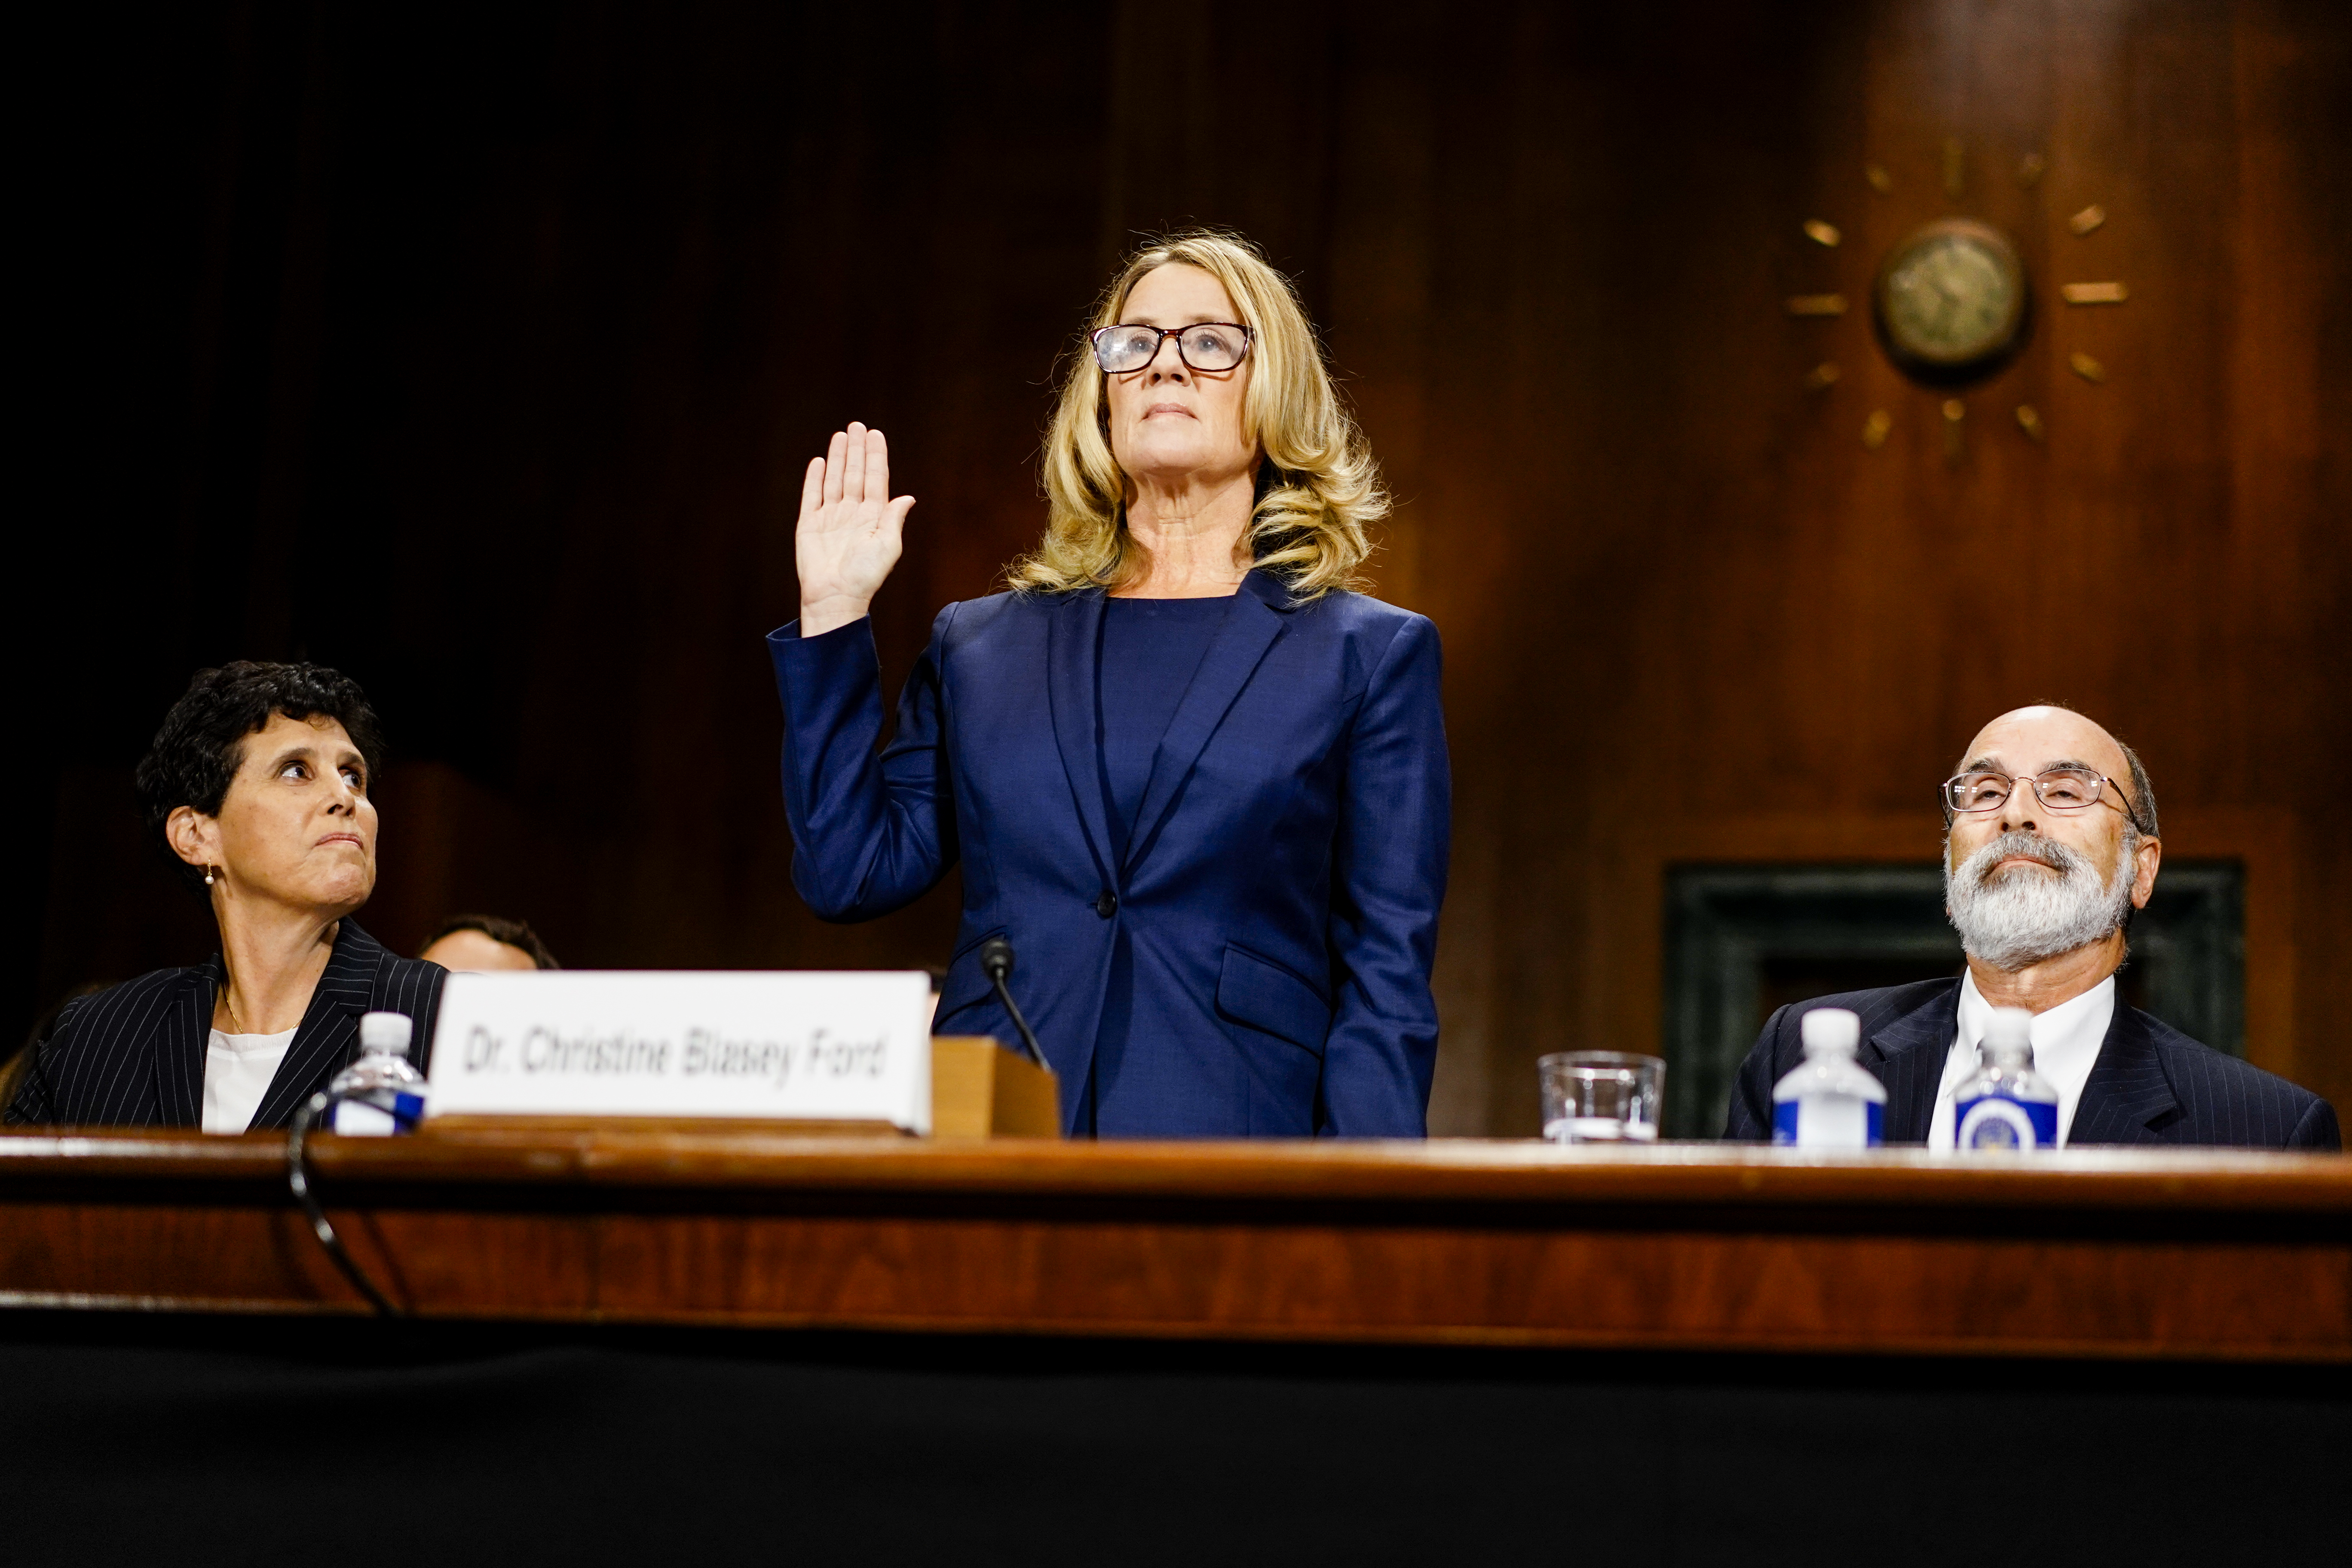 A Republican senator unwittingly exposed the double standard facing Christine Blasey Ford